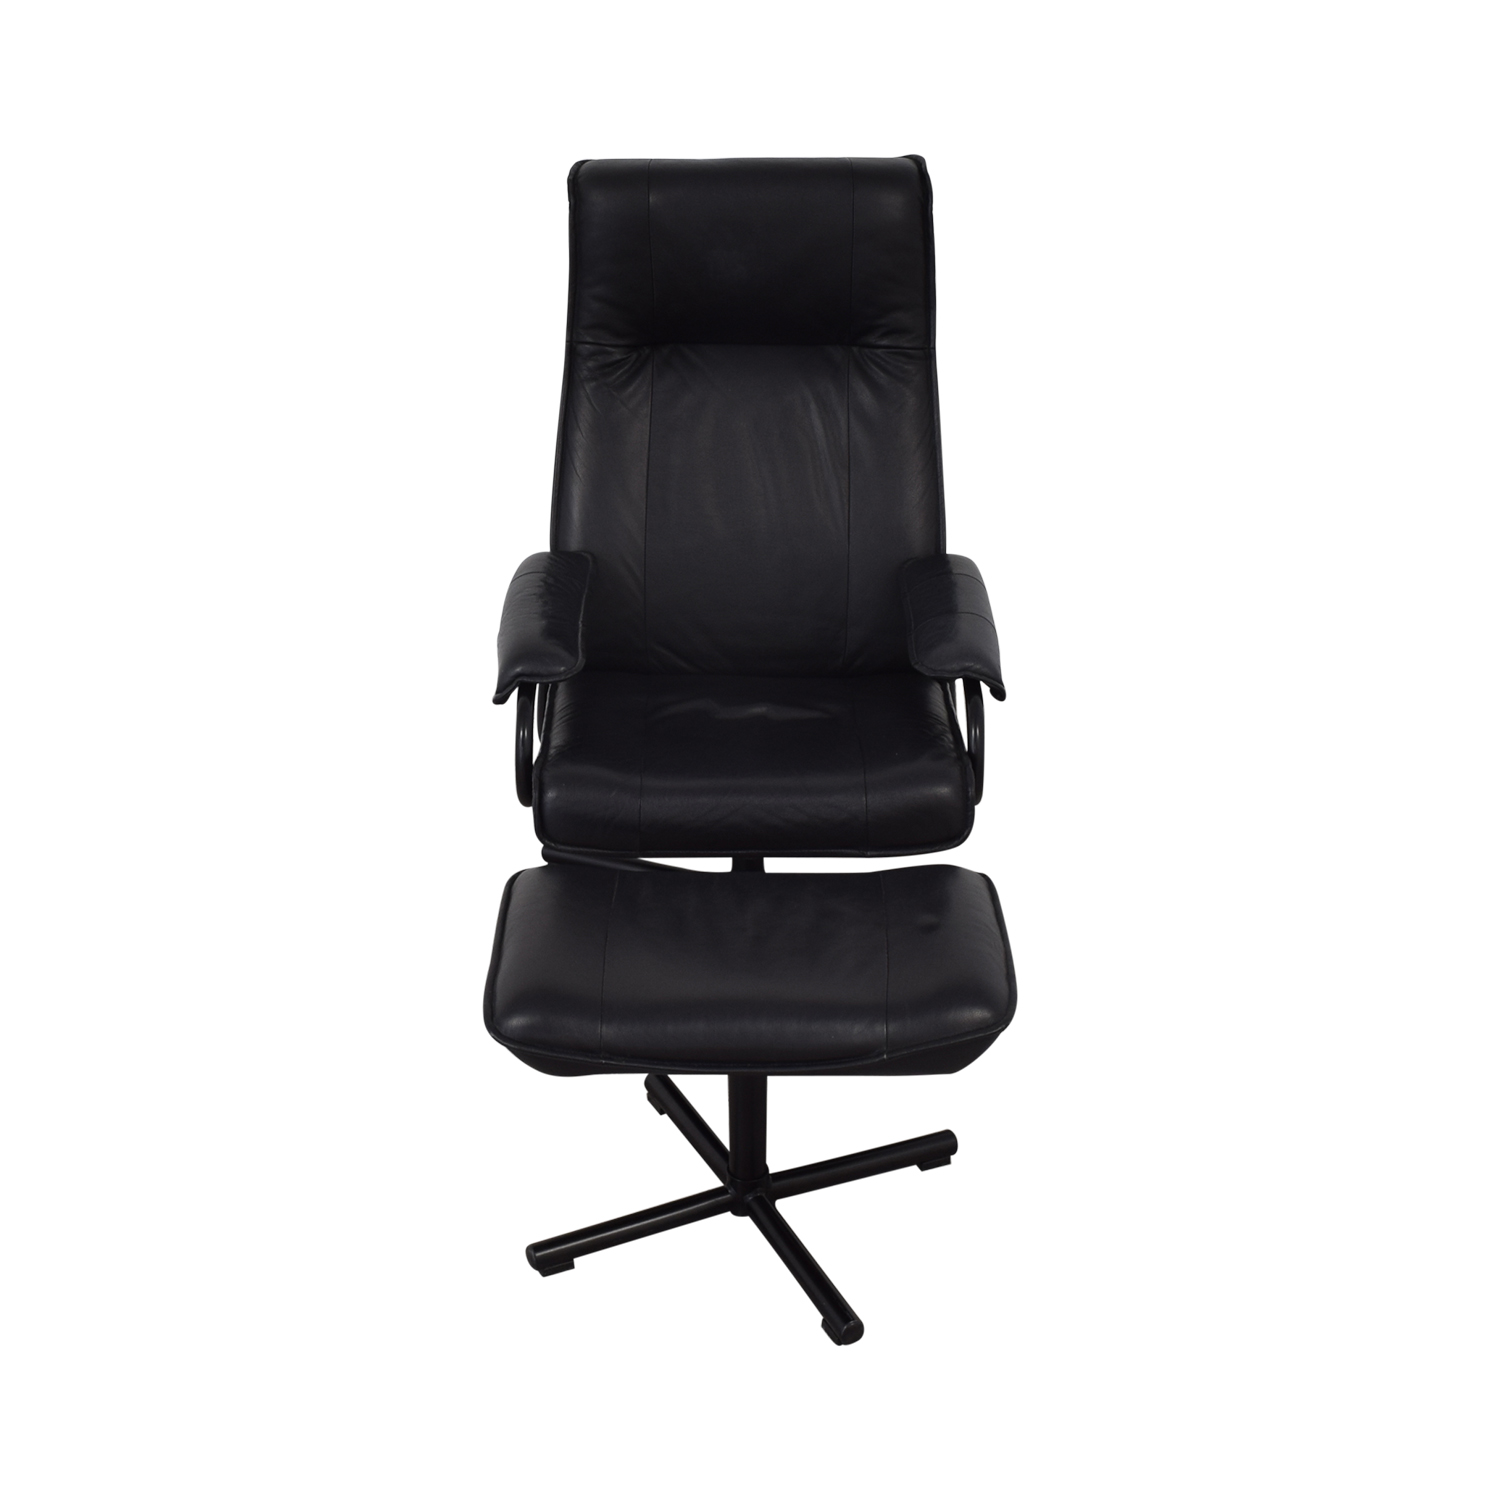 KEBE Kebe Danish Leather Lounge Chair and Footstool ct